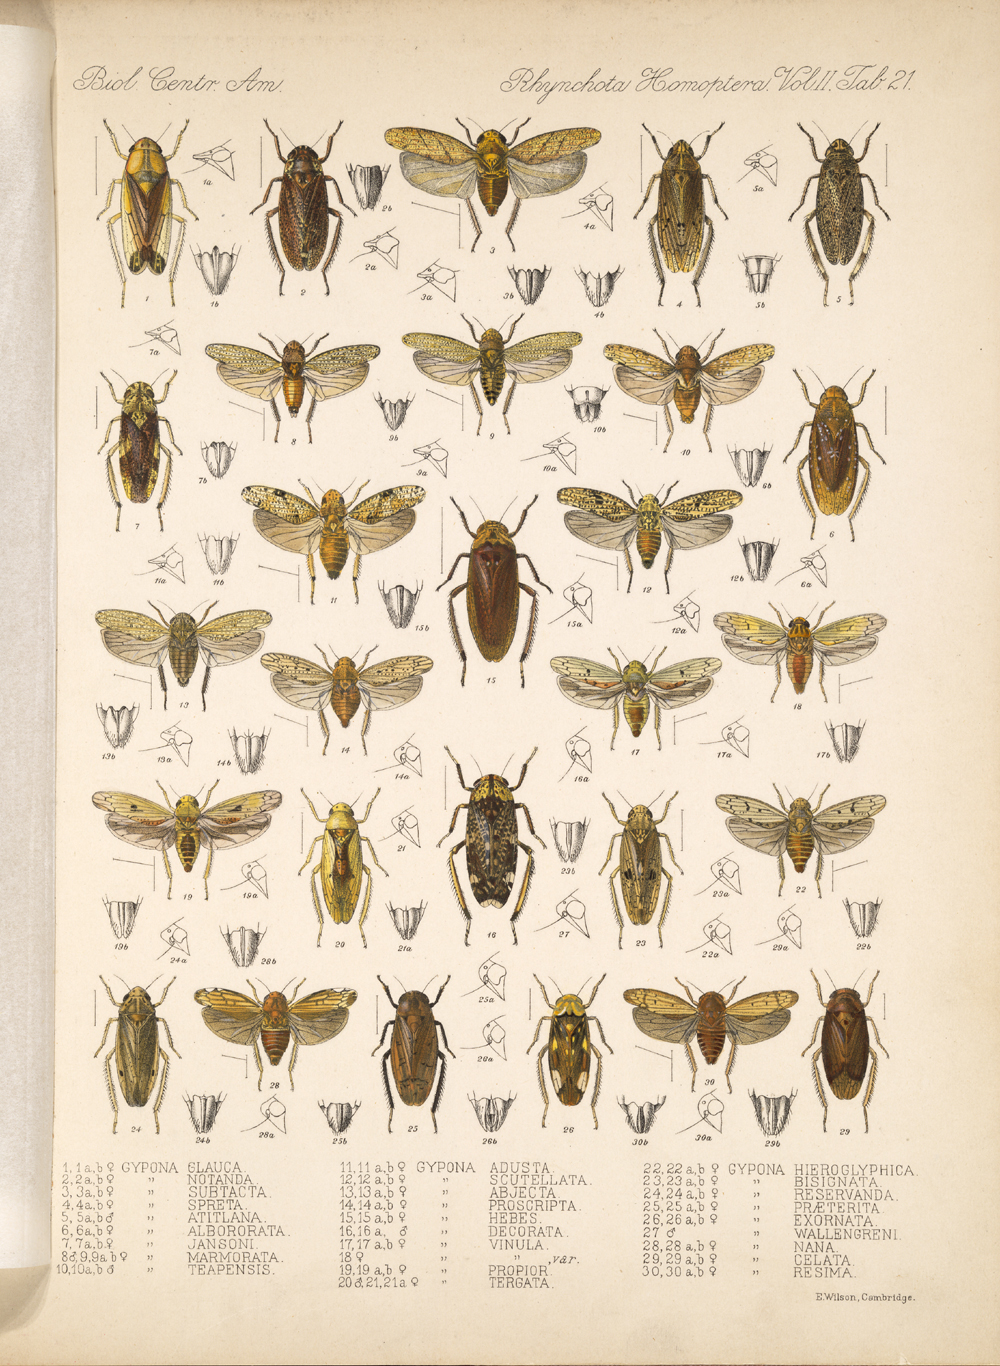 Other Insects,  Image number:bca_18_02_01_380